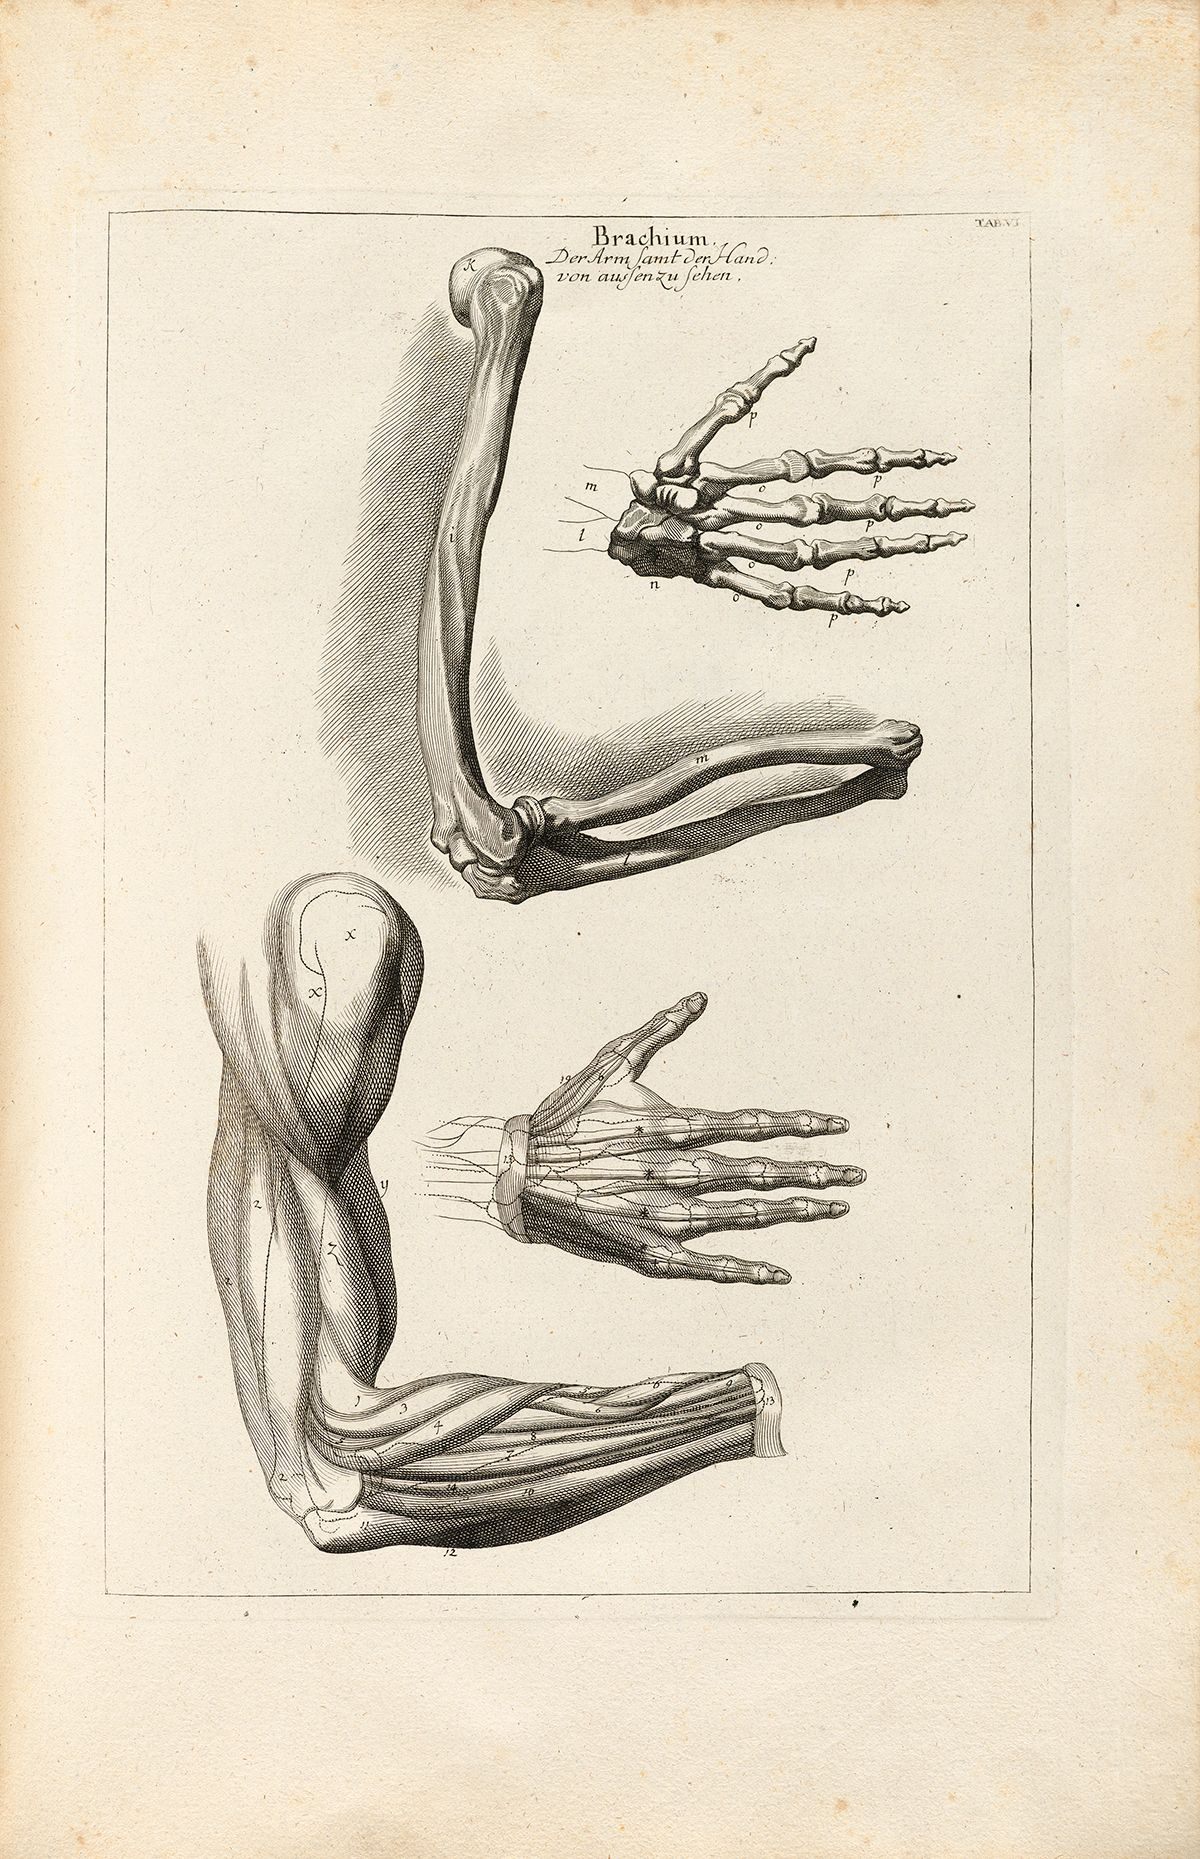 Outside view of right arm and hand | Creative | Pinterest | Arms ...